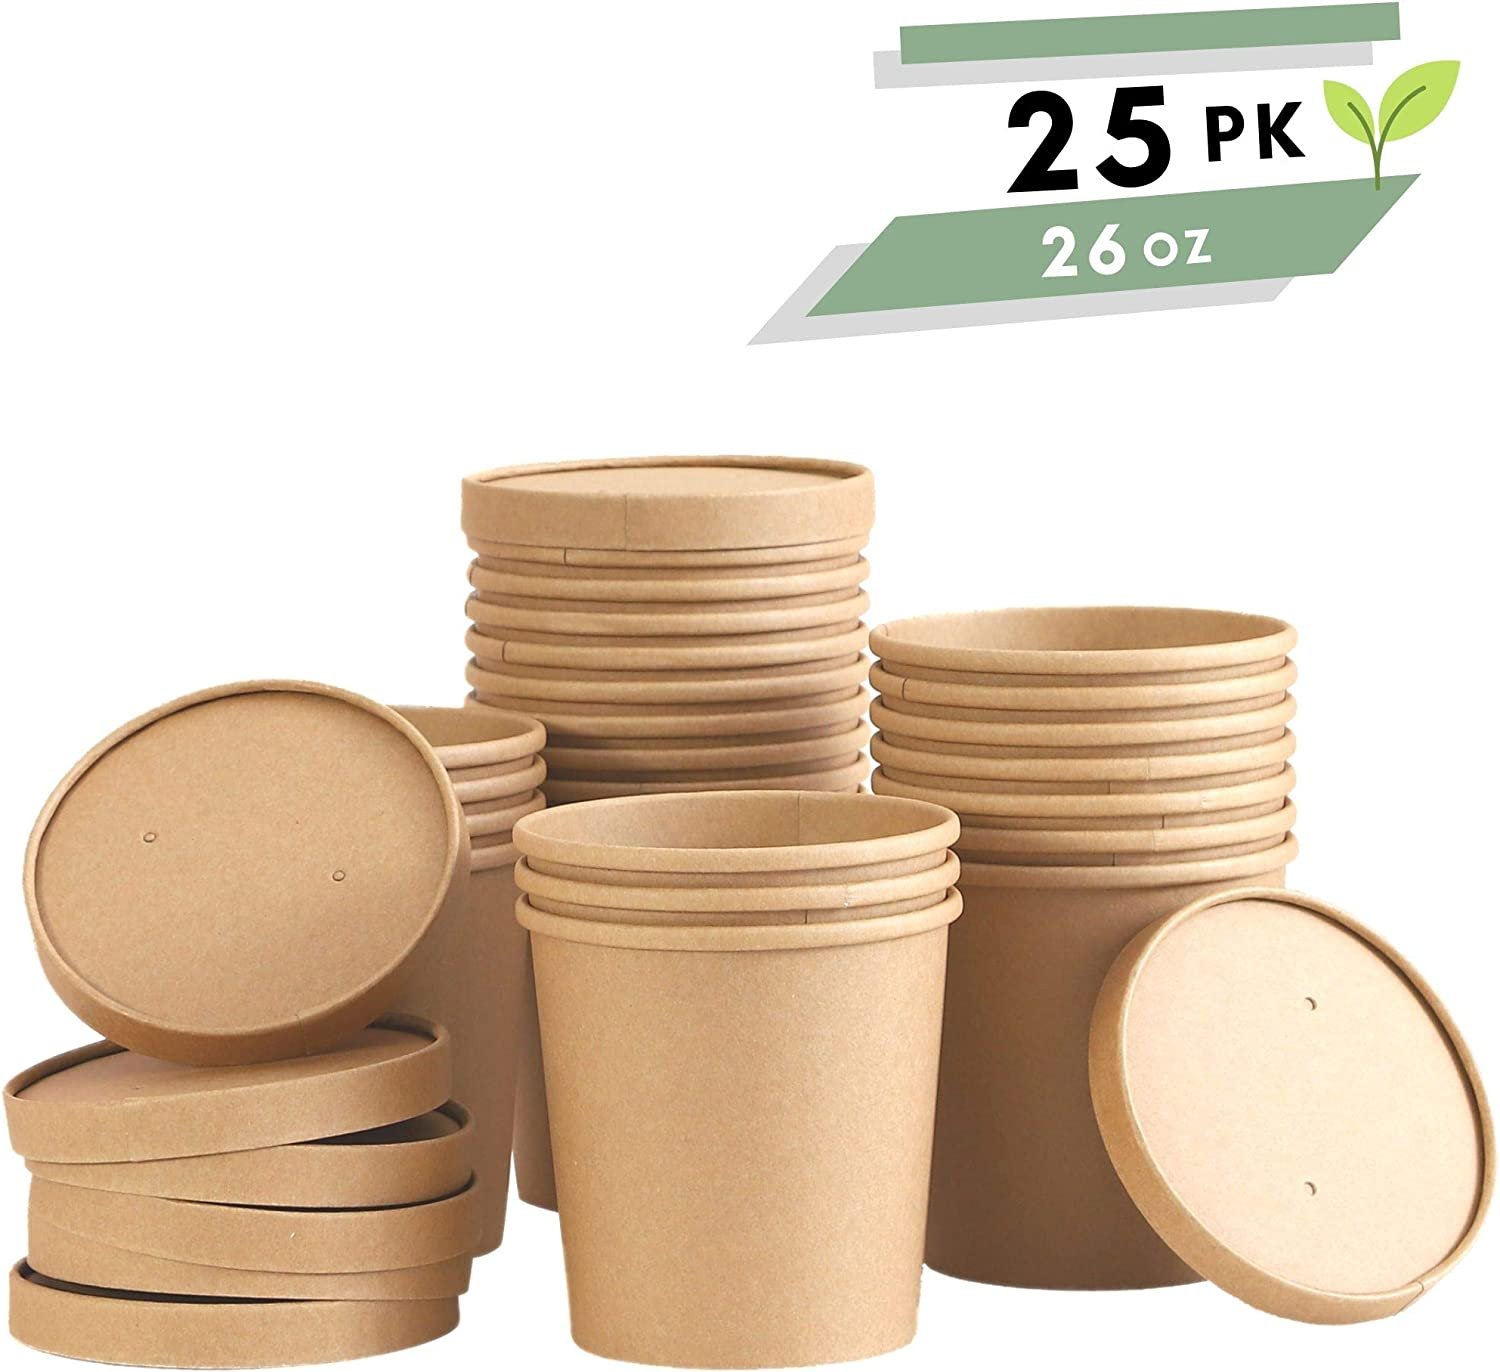 Disposable Paper Food Containers with Lids - 25 Pack 26 oz | Take out Food Containers | To Go Containers with Lids | Party Supplies Treat Cups for Sundae, Frozen Yogurt, Soup, Dessert